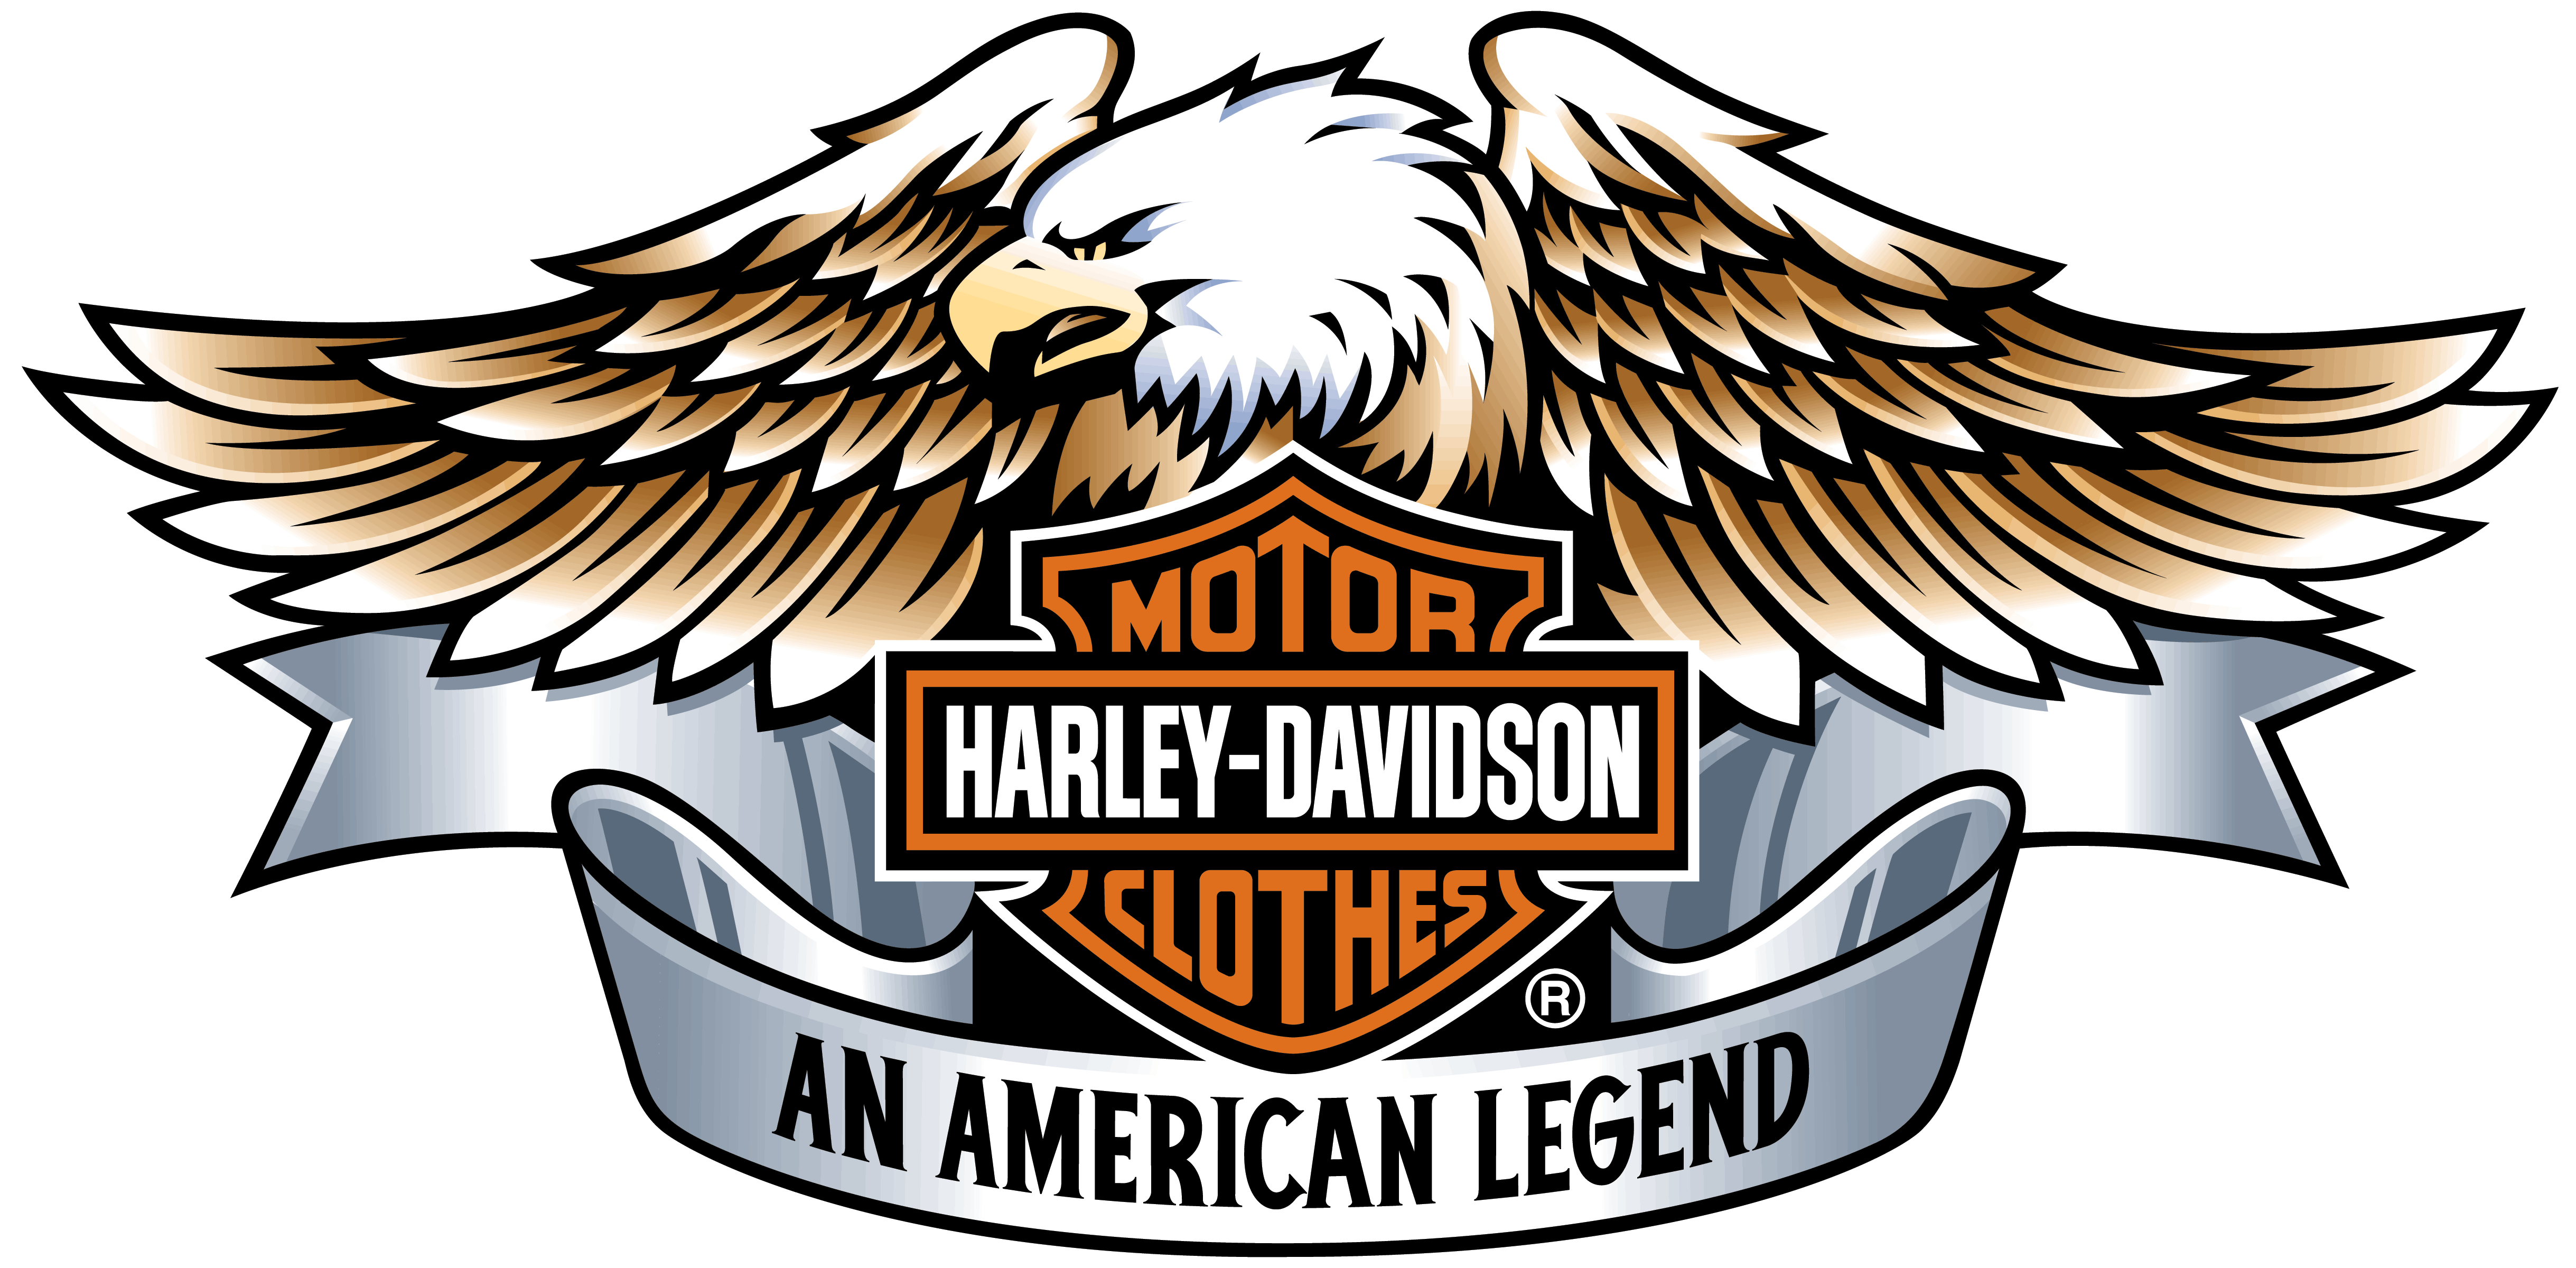 Harley Davidson Logo Images Free Posted By Christopher Sellers